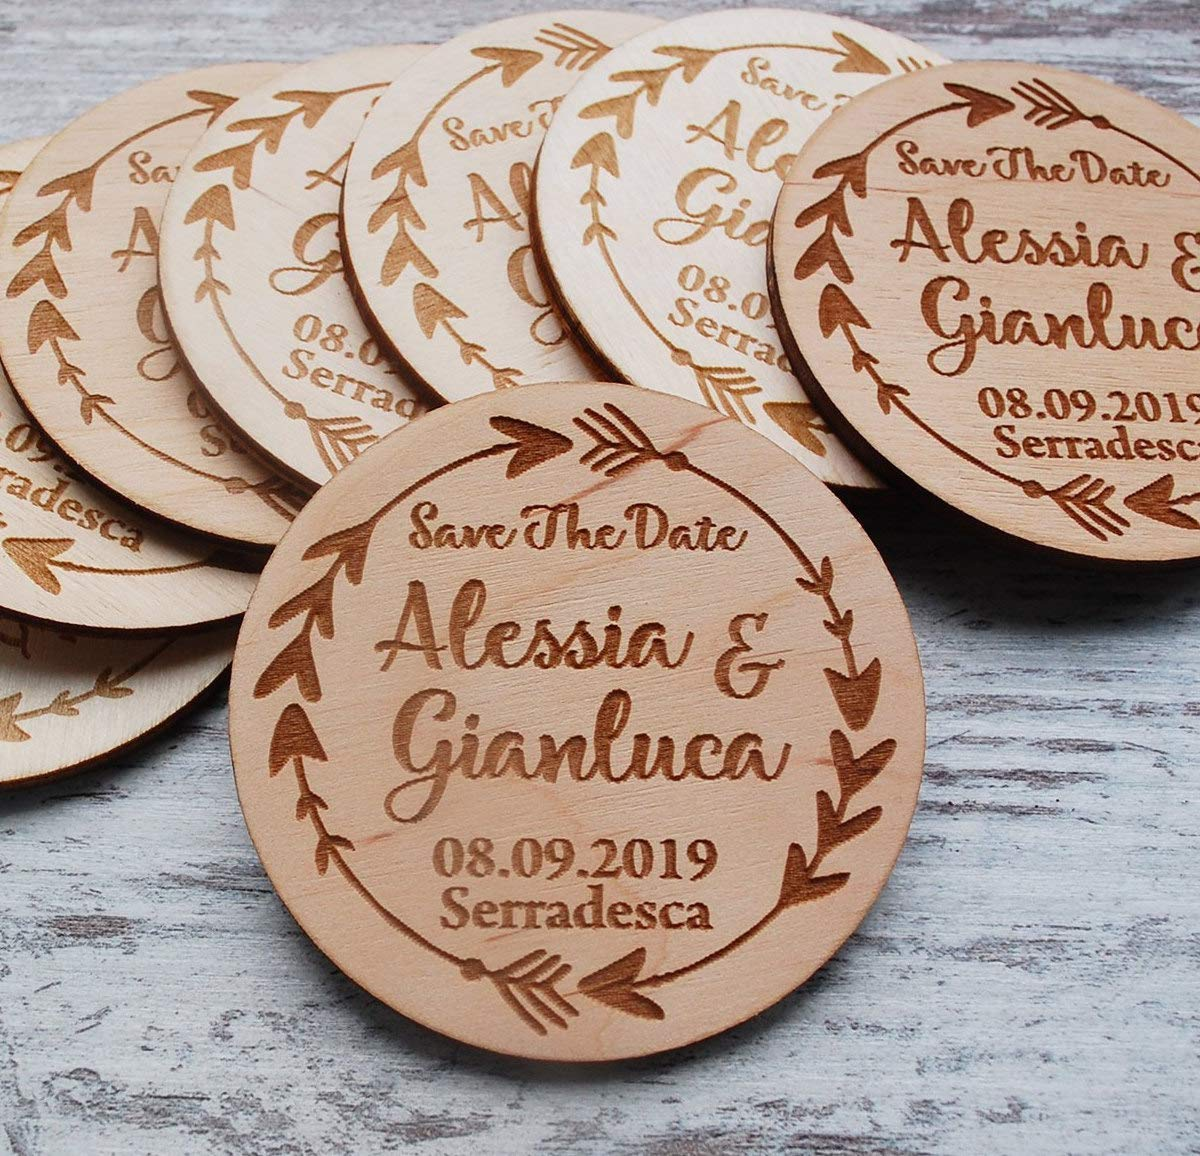 50Pcs Round Wooden Wedding Magnets, Boho Save The Date Magnet Wood Custom Save The Dates Rustic Wedding Invitation Wooden Magnets Wedding Favor Tags Thank You Gift